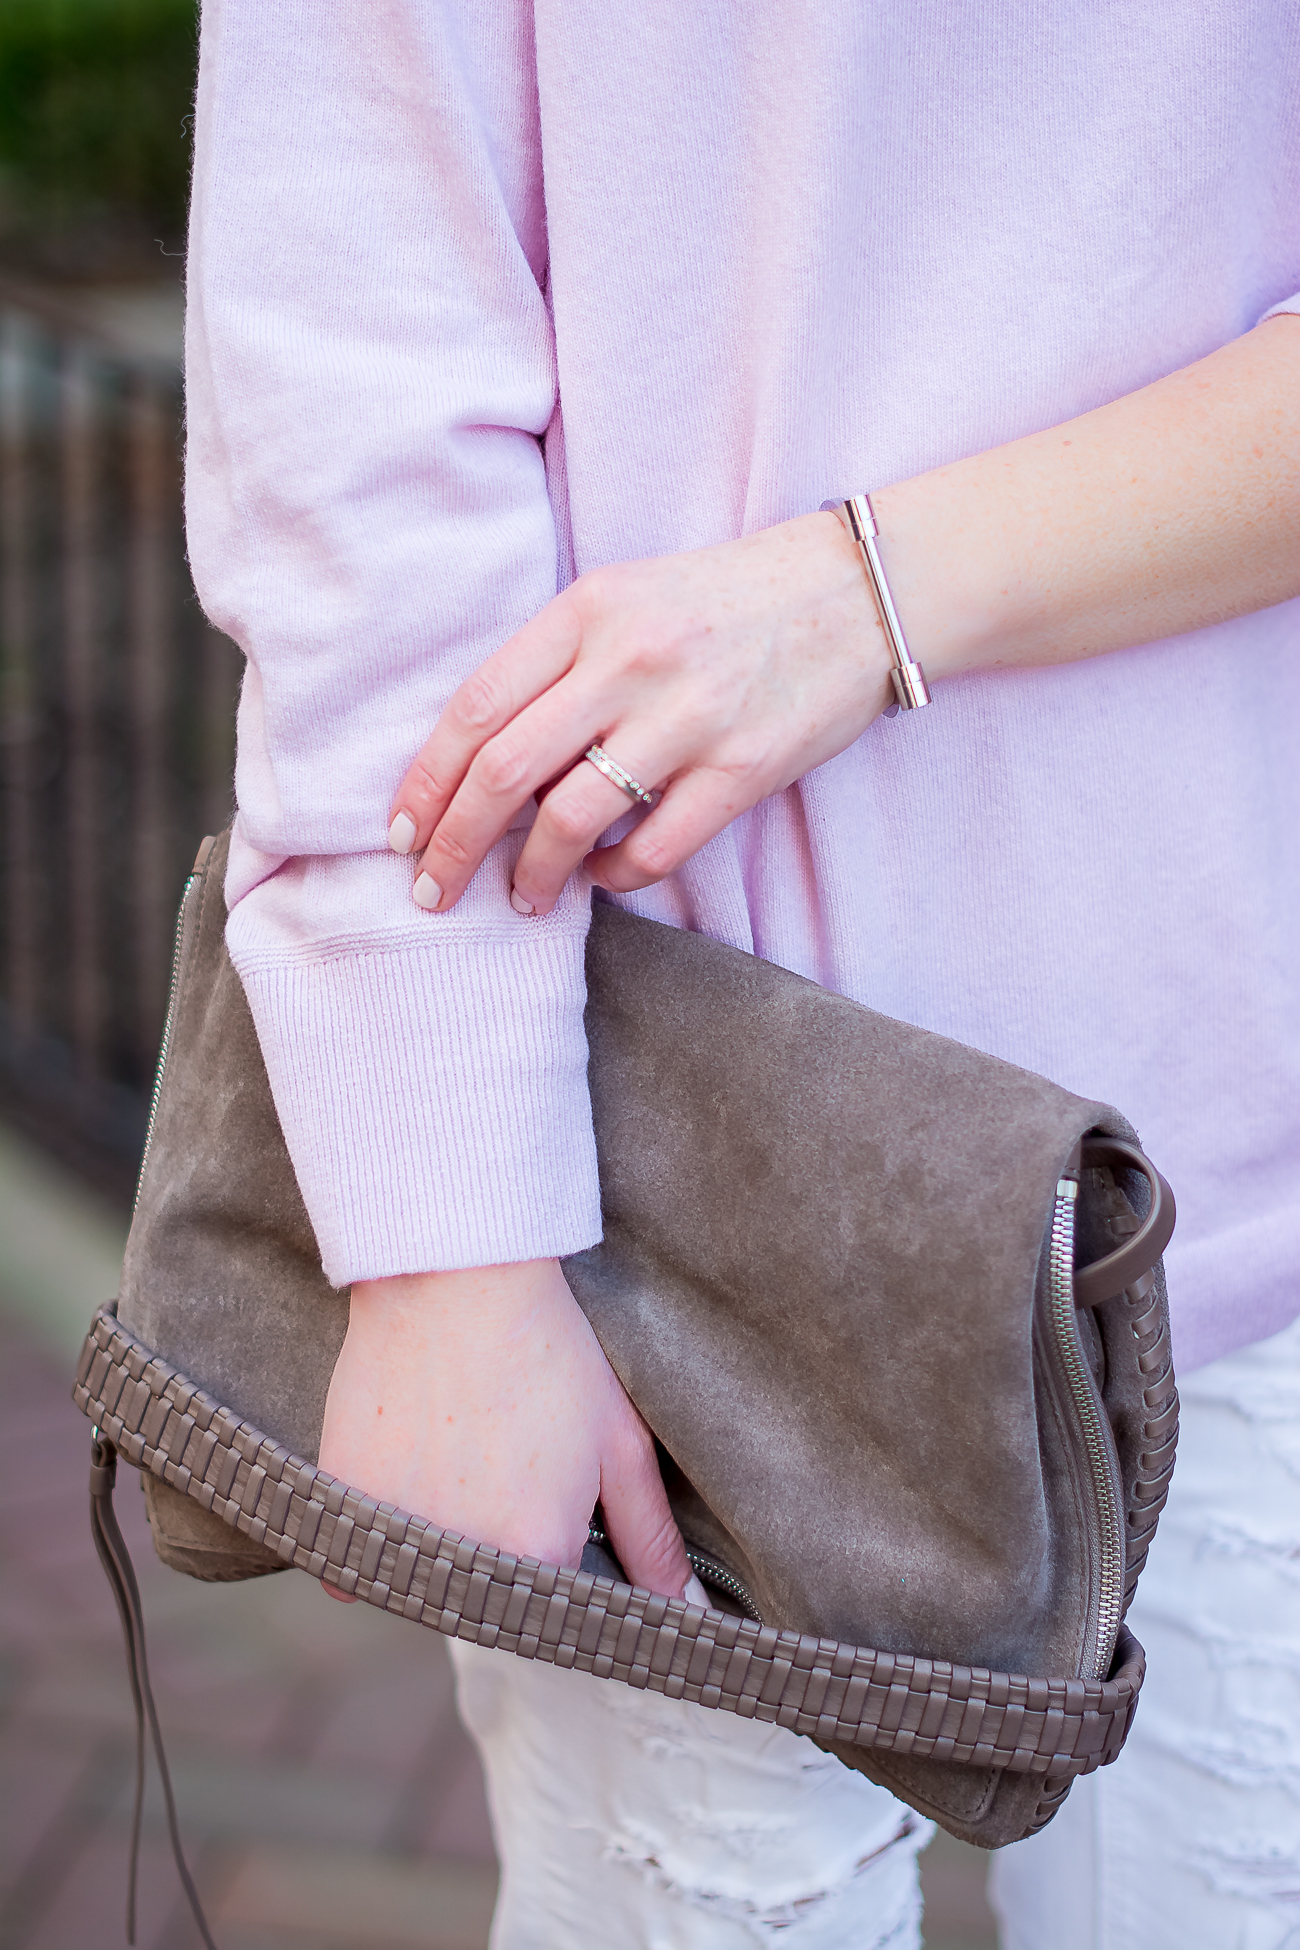 banana-republic-oversized-pink-wool-sweater-all-saints-convertible-clutch-simple-spring-pastels